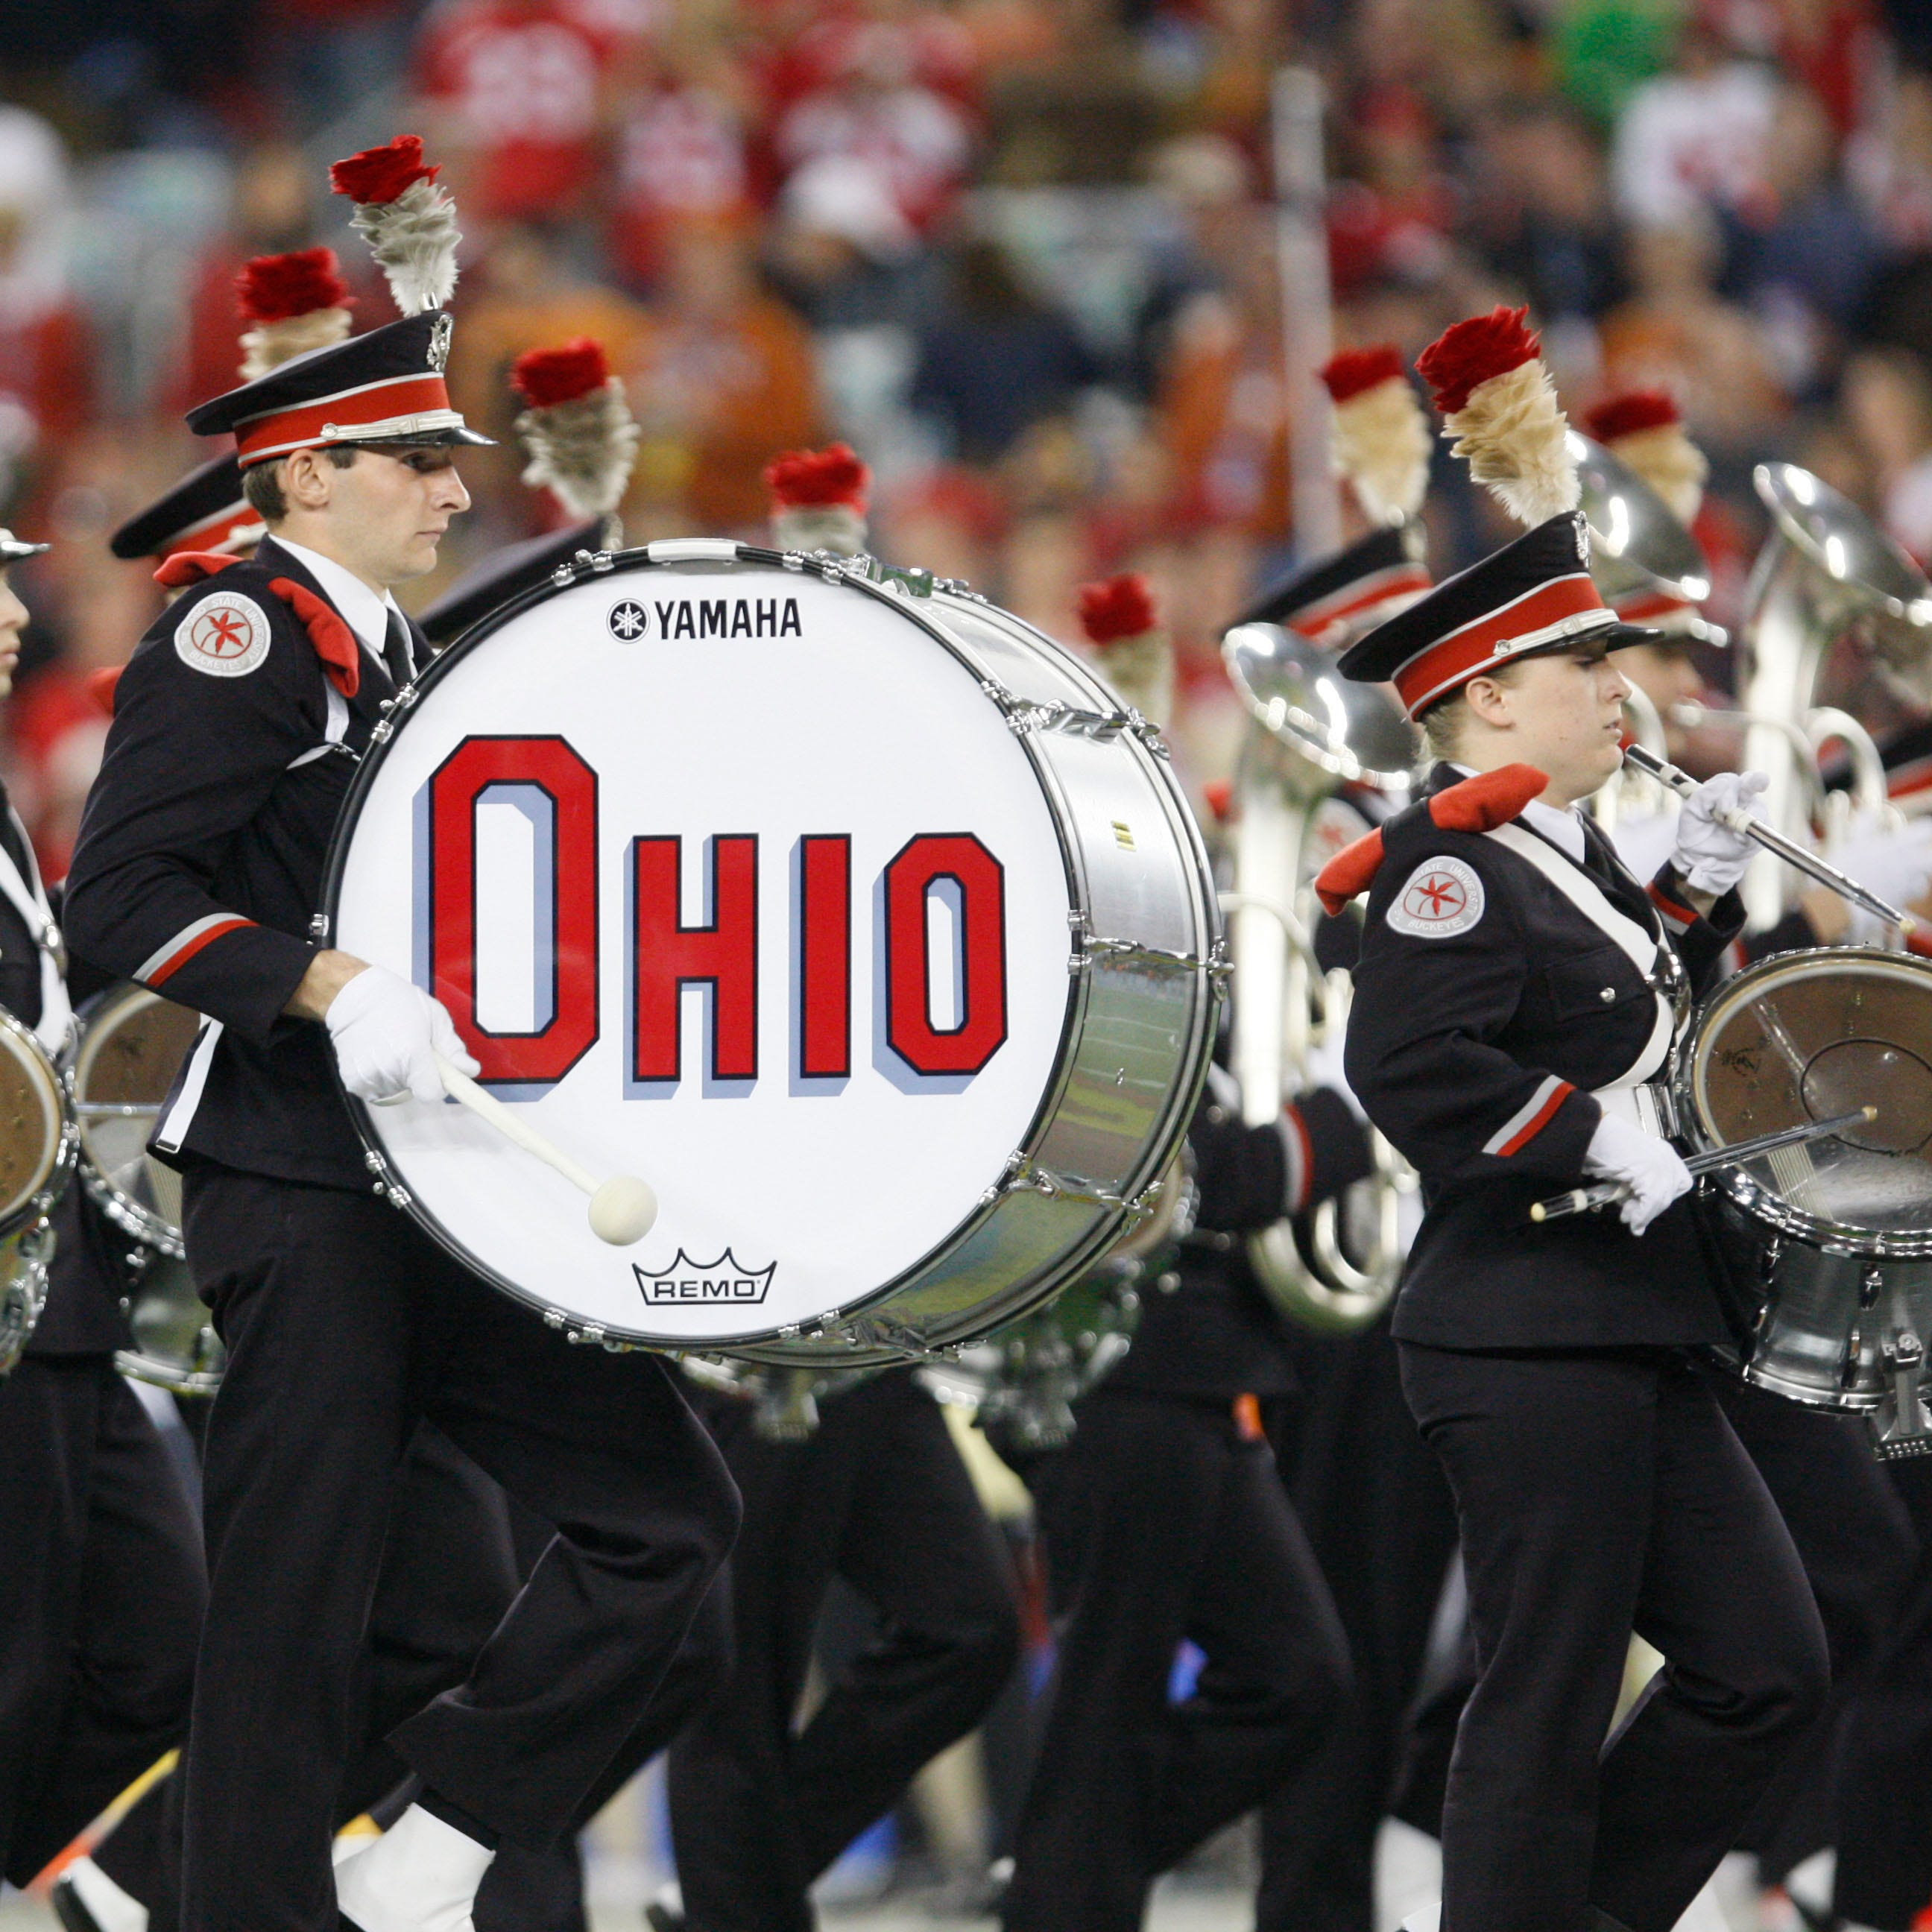 Chillicothe to receive visit from Ohio State's 'Best Damn Band in the Land'